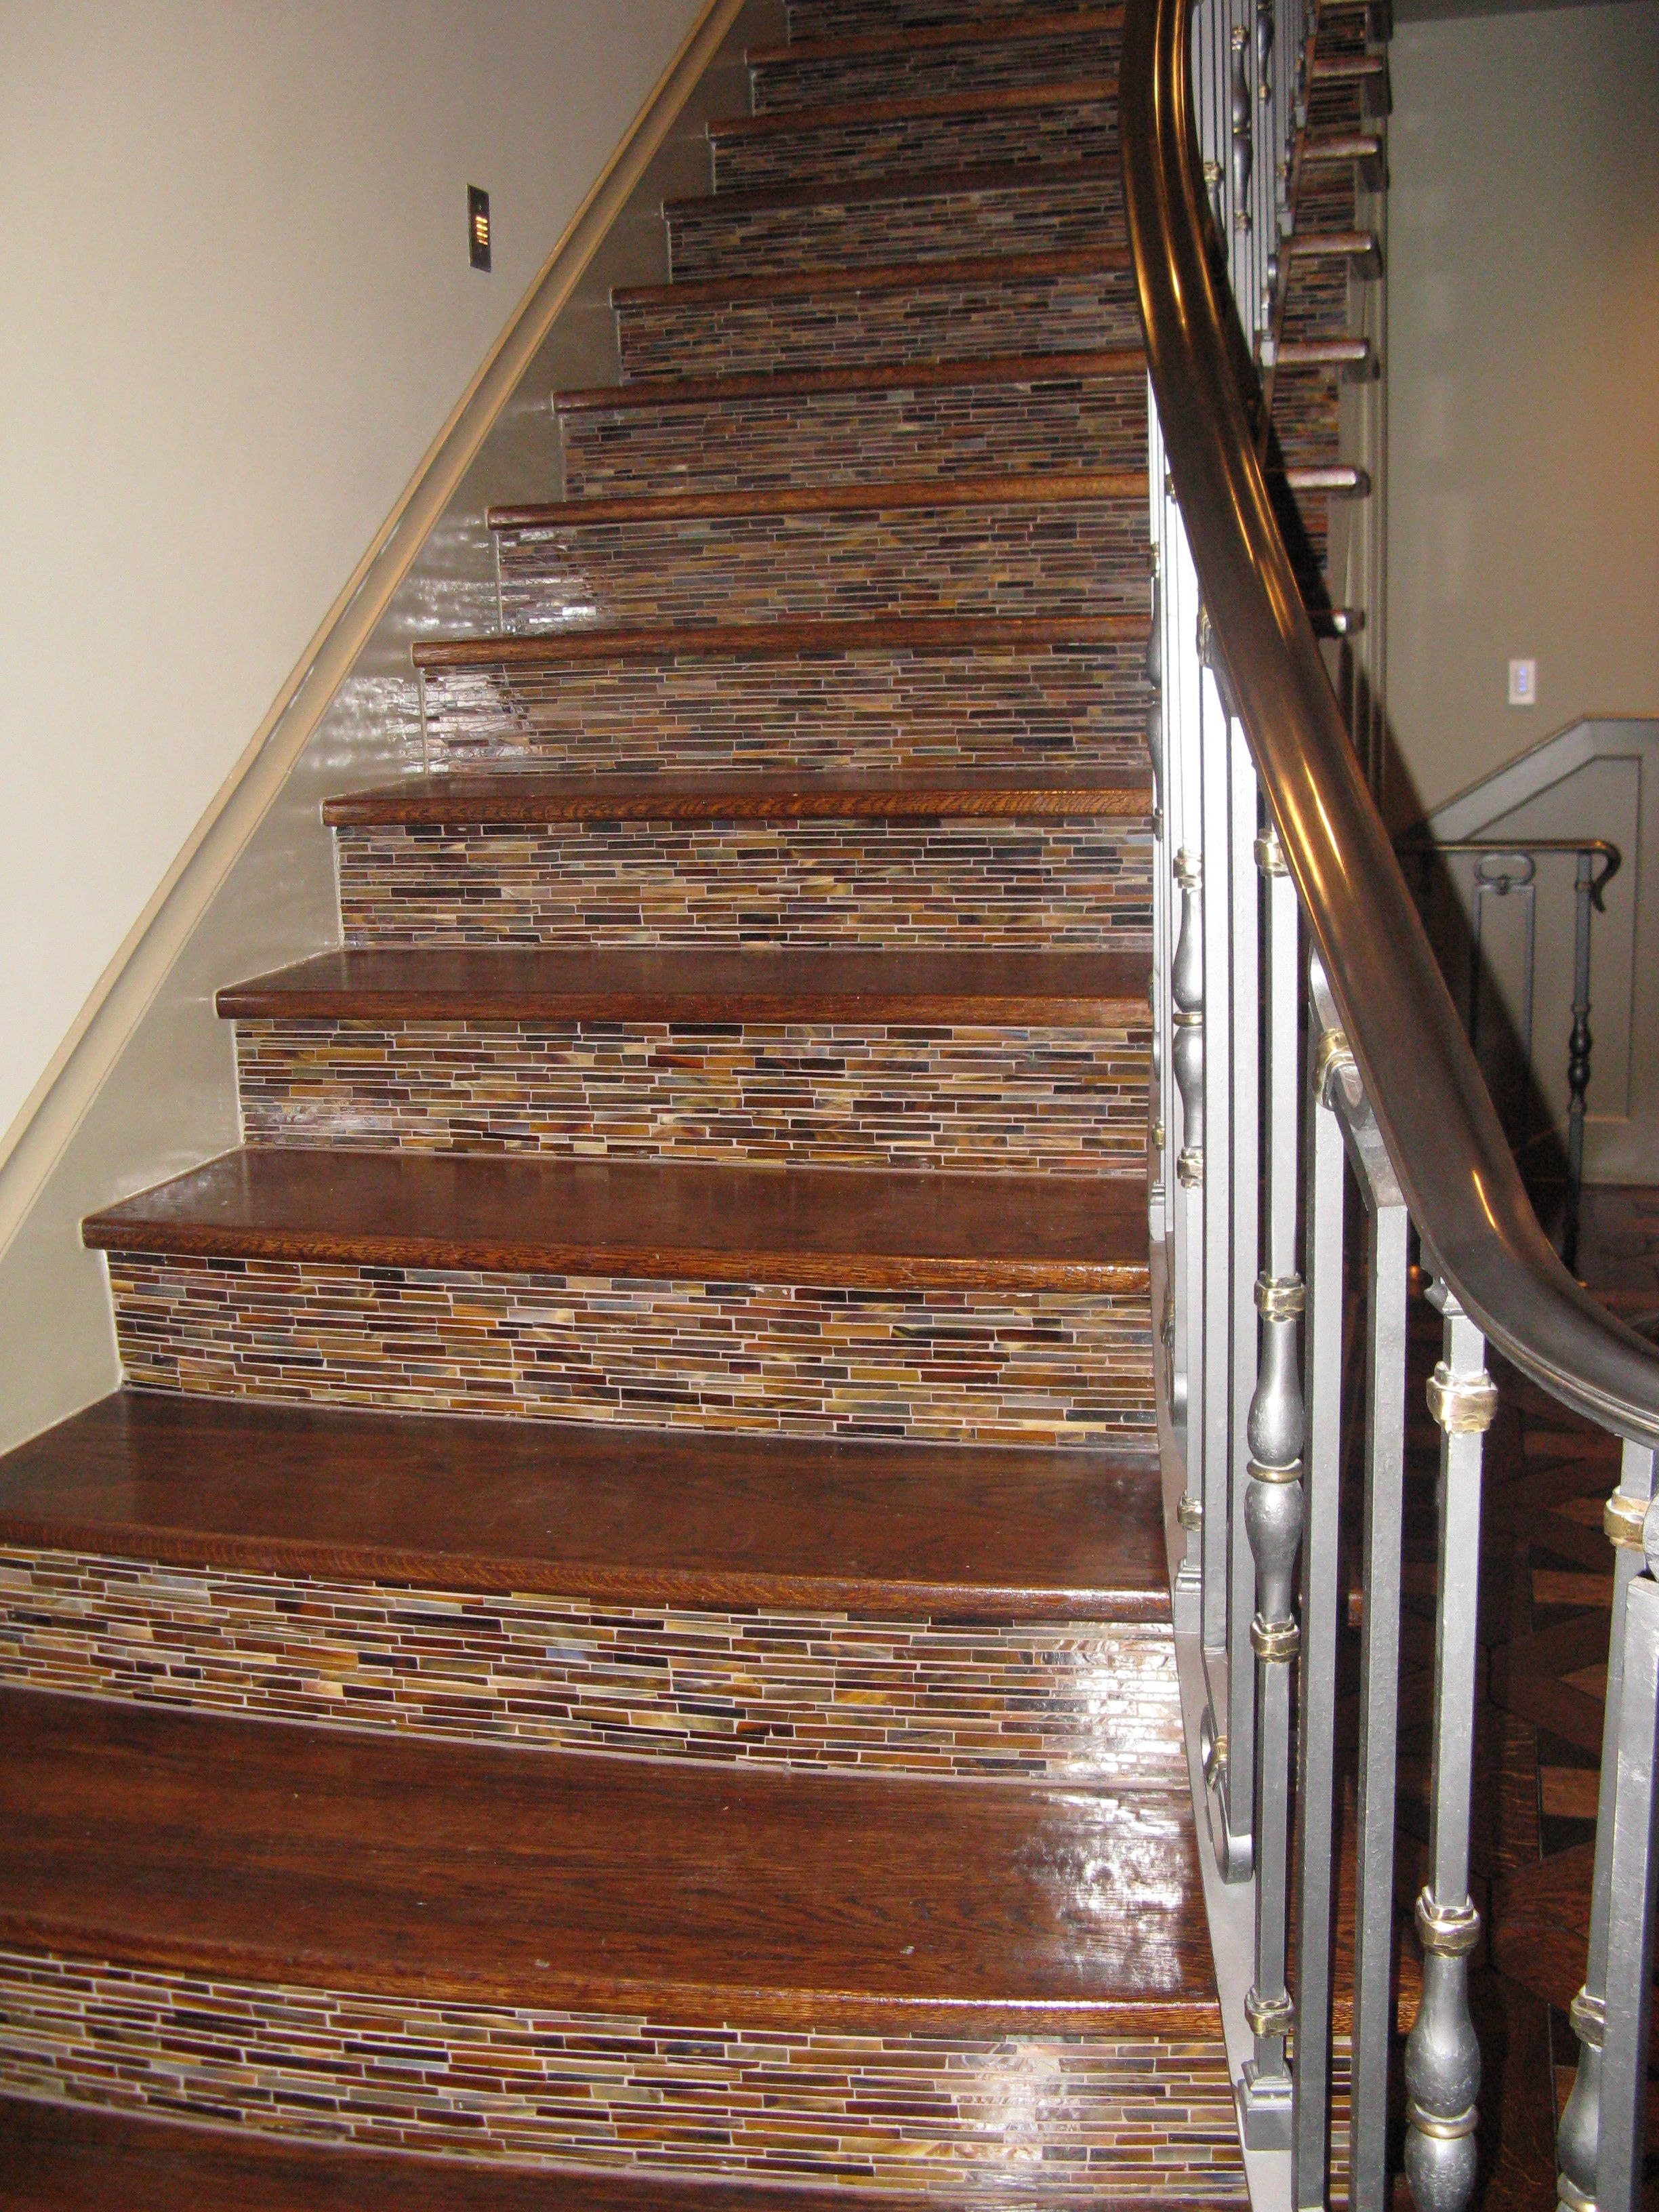 Best Fabulous Staircase With Tile Up The Risers Staircase Staircase Remodel Tiled Staircase 400 x 300